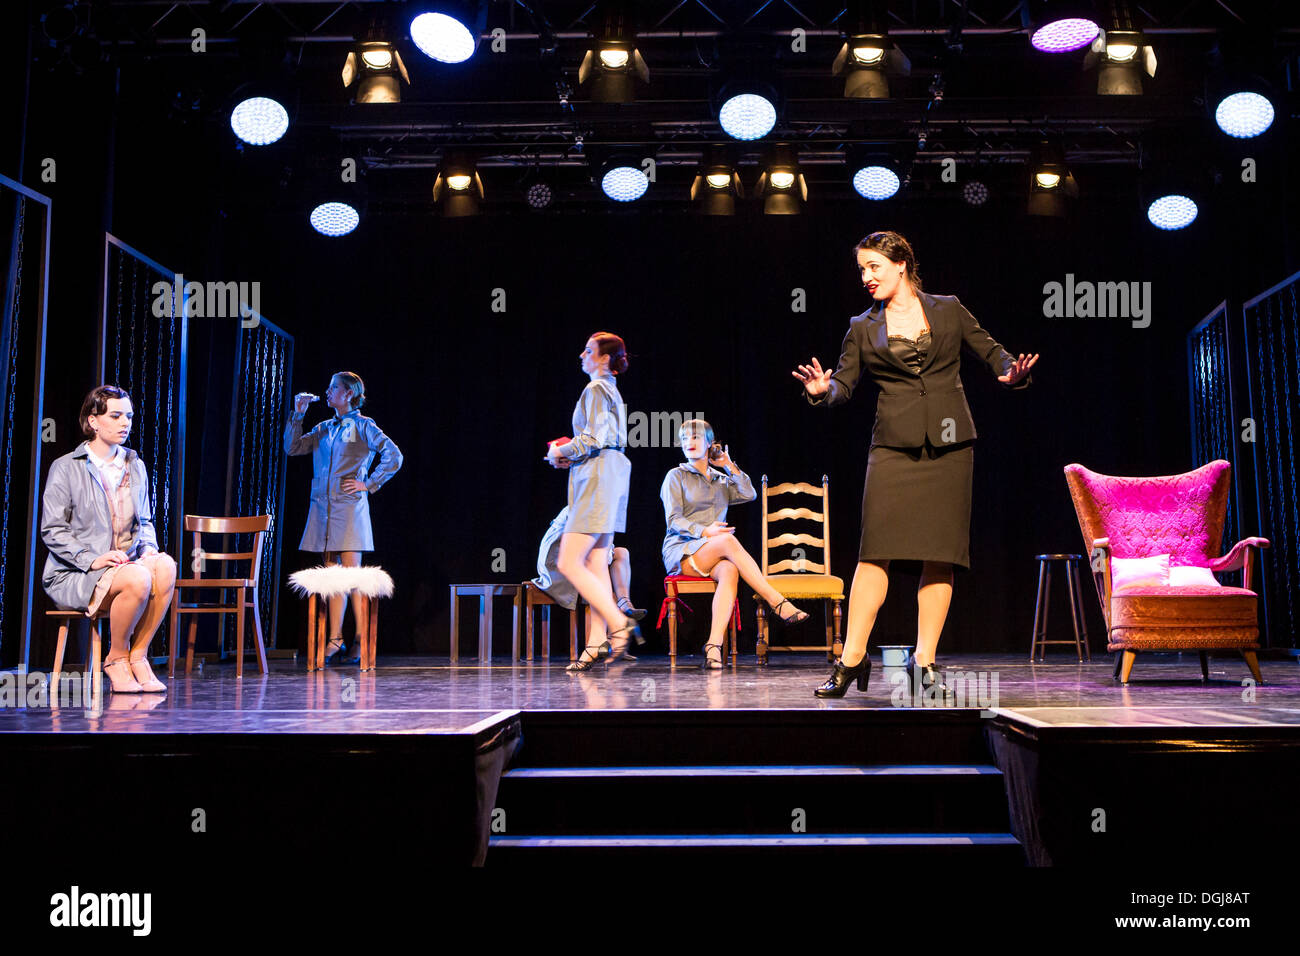 Musical 'Chicago', live performance, Le Théâtre in Kriens, Lucerne, Switzerland, Europe - Stock Image